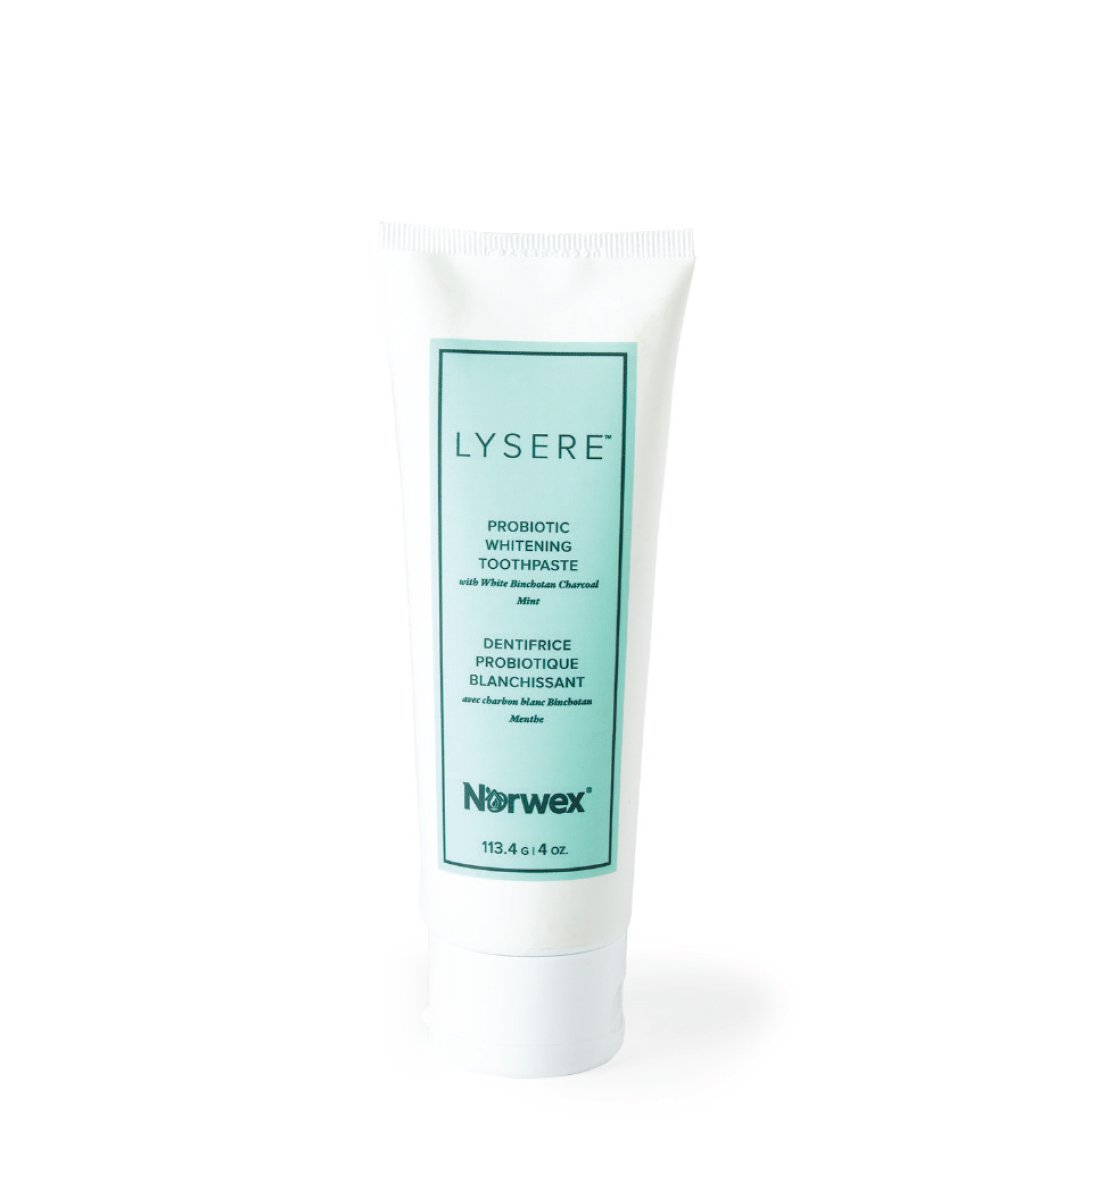 Lysere Probiotic Whitening Toothpaste